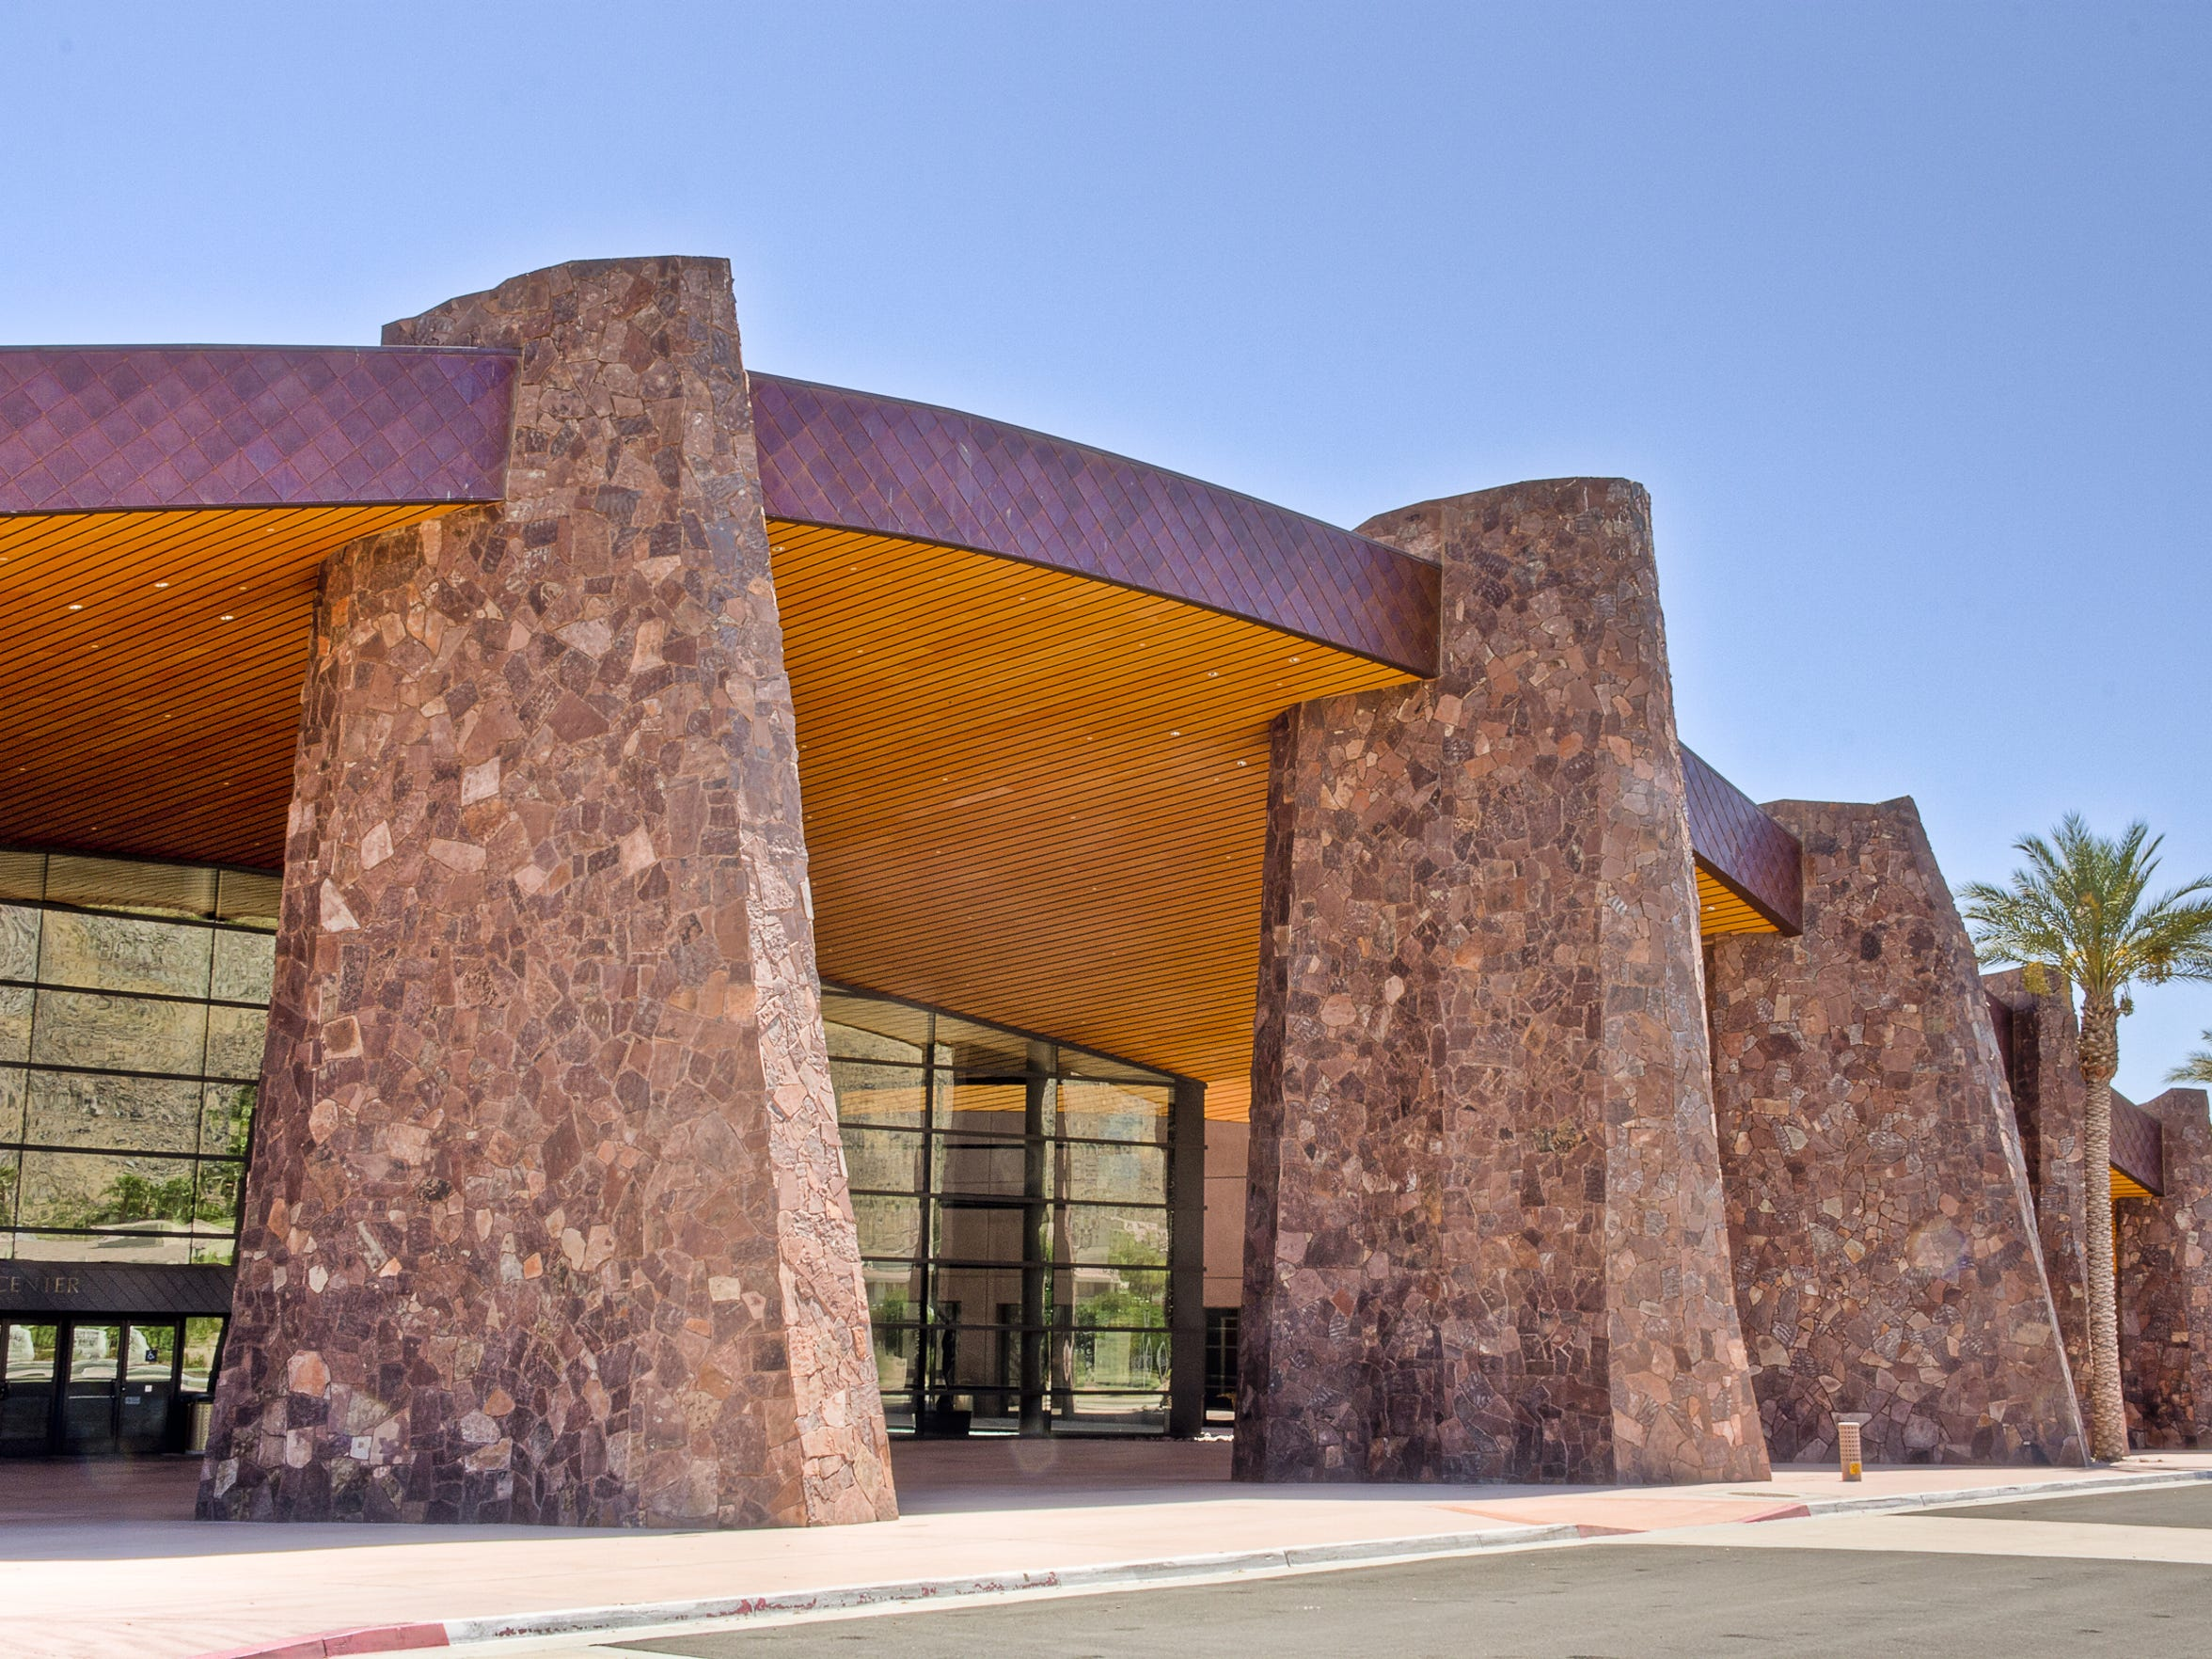 The Palm Springs Convention Center is built on land